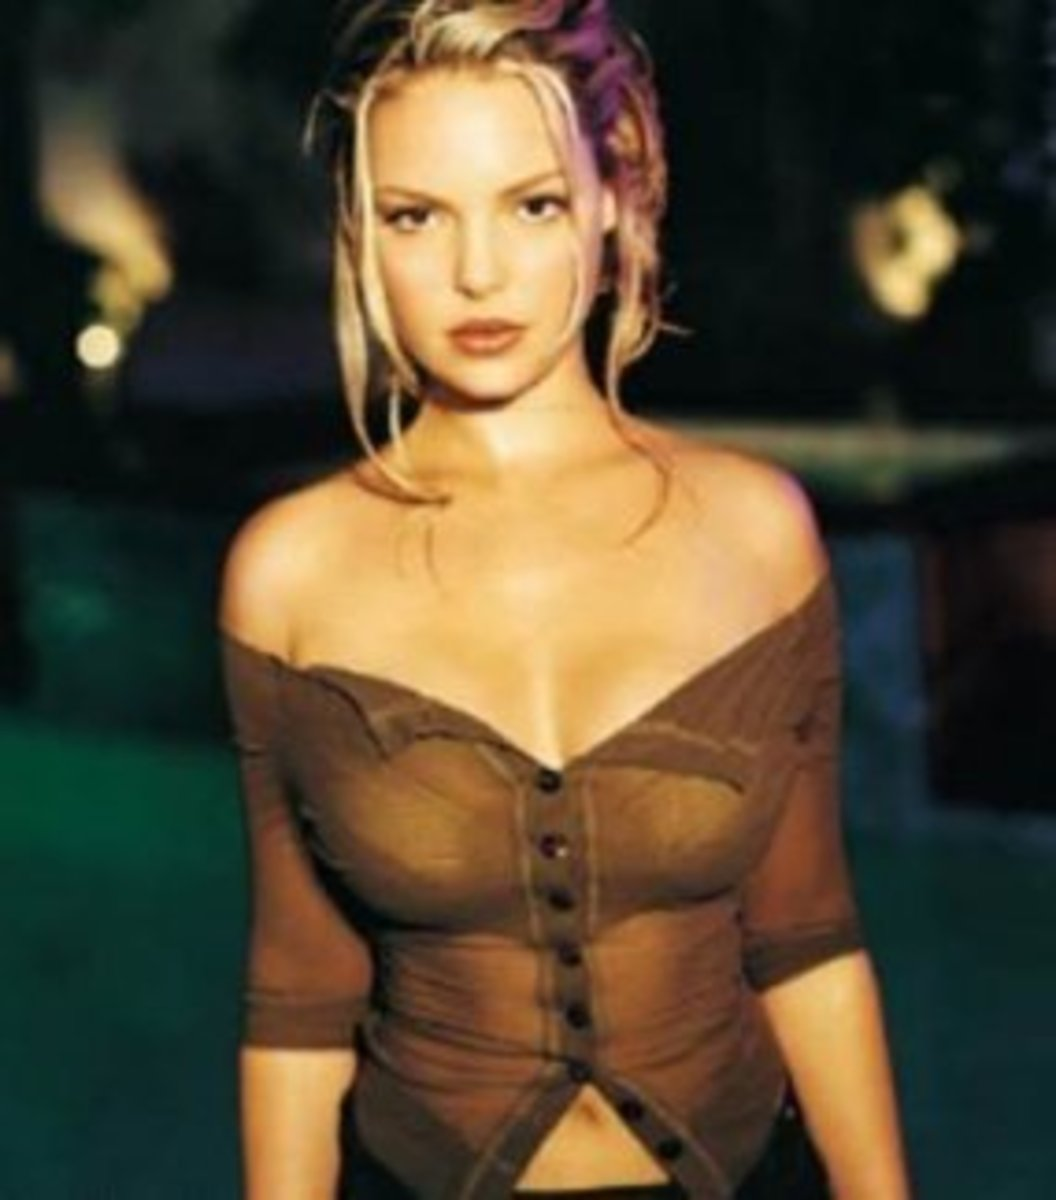 Sexy hot Katherine Heigl - I love her